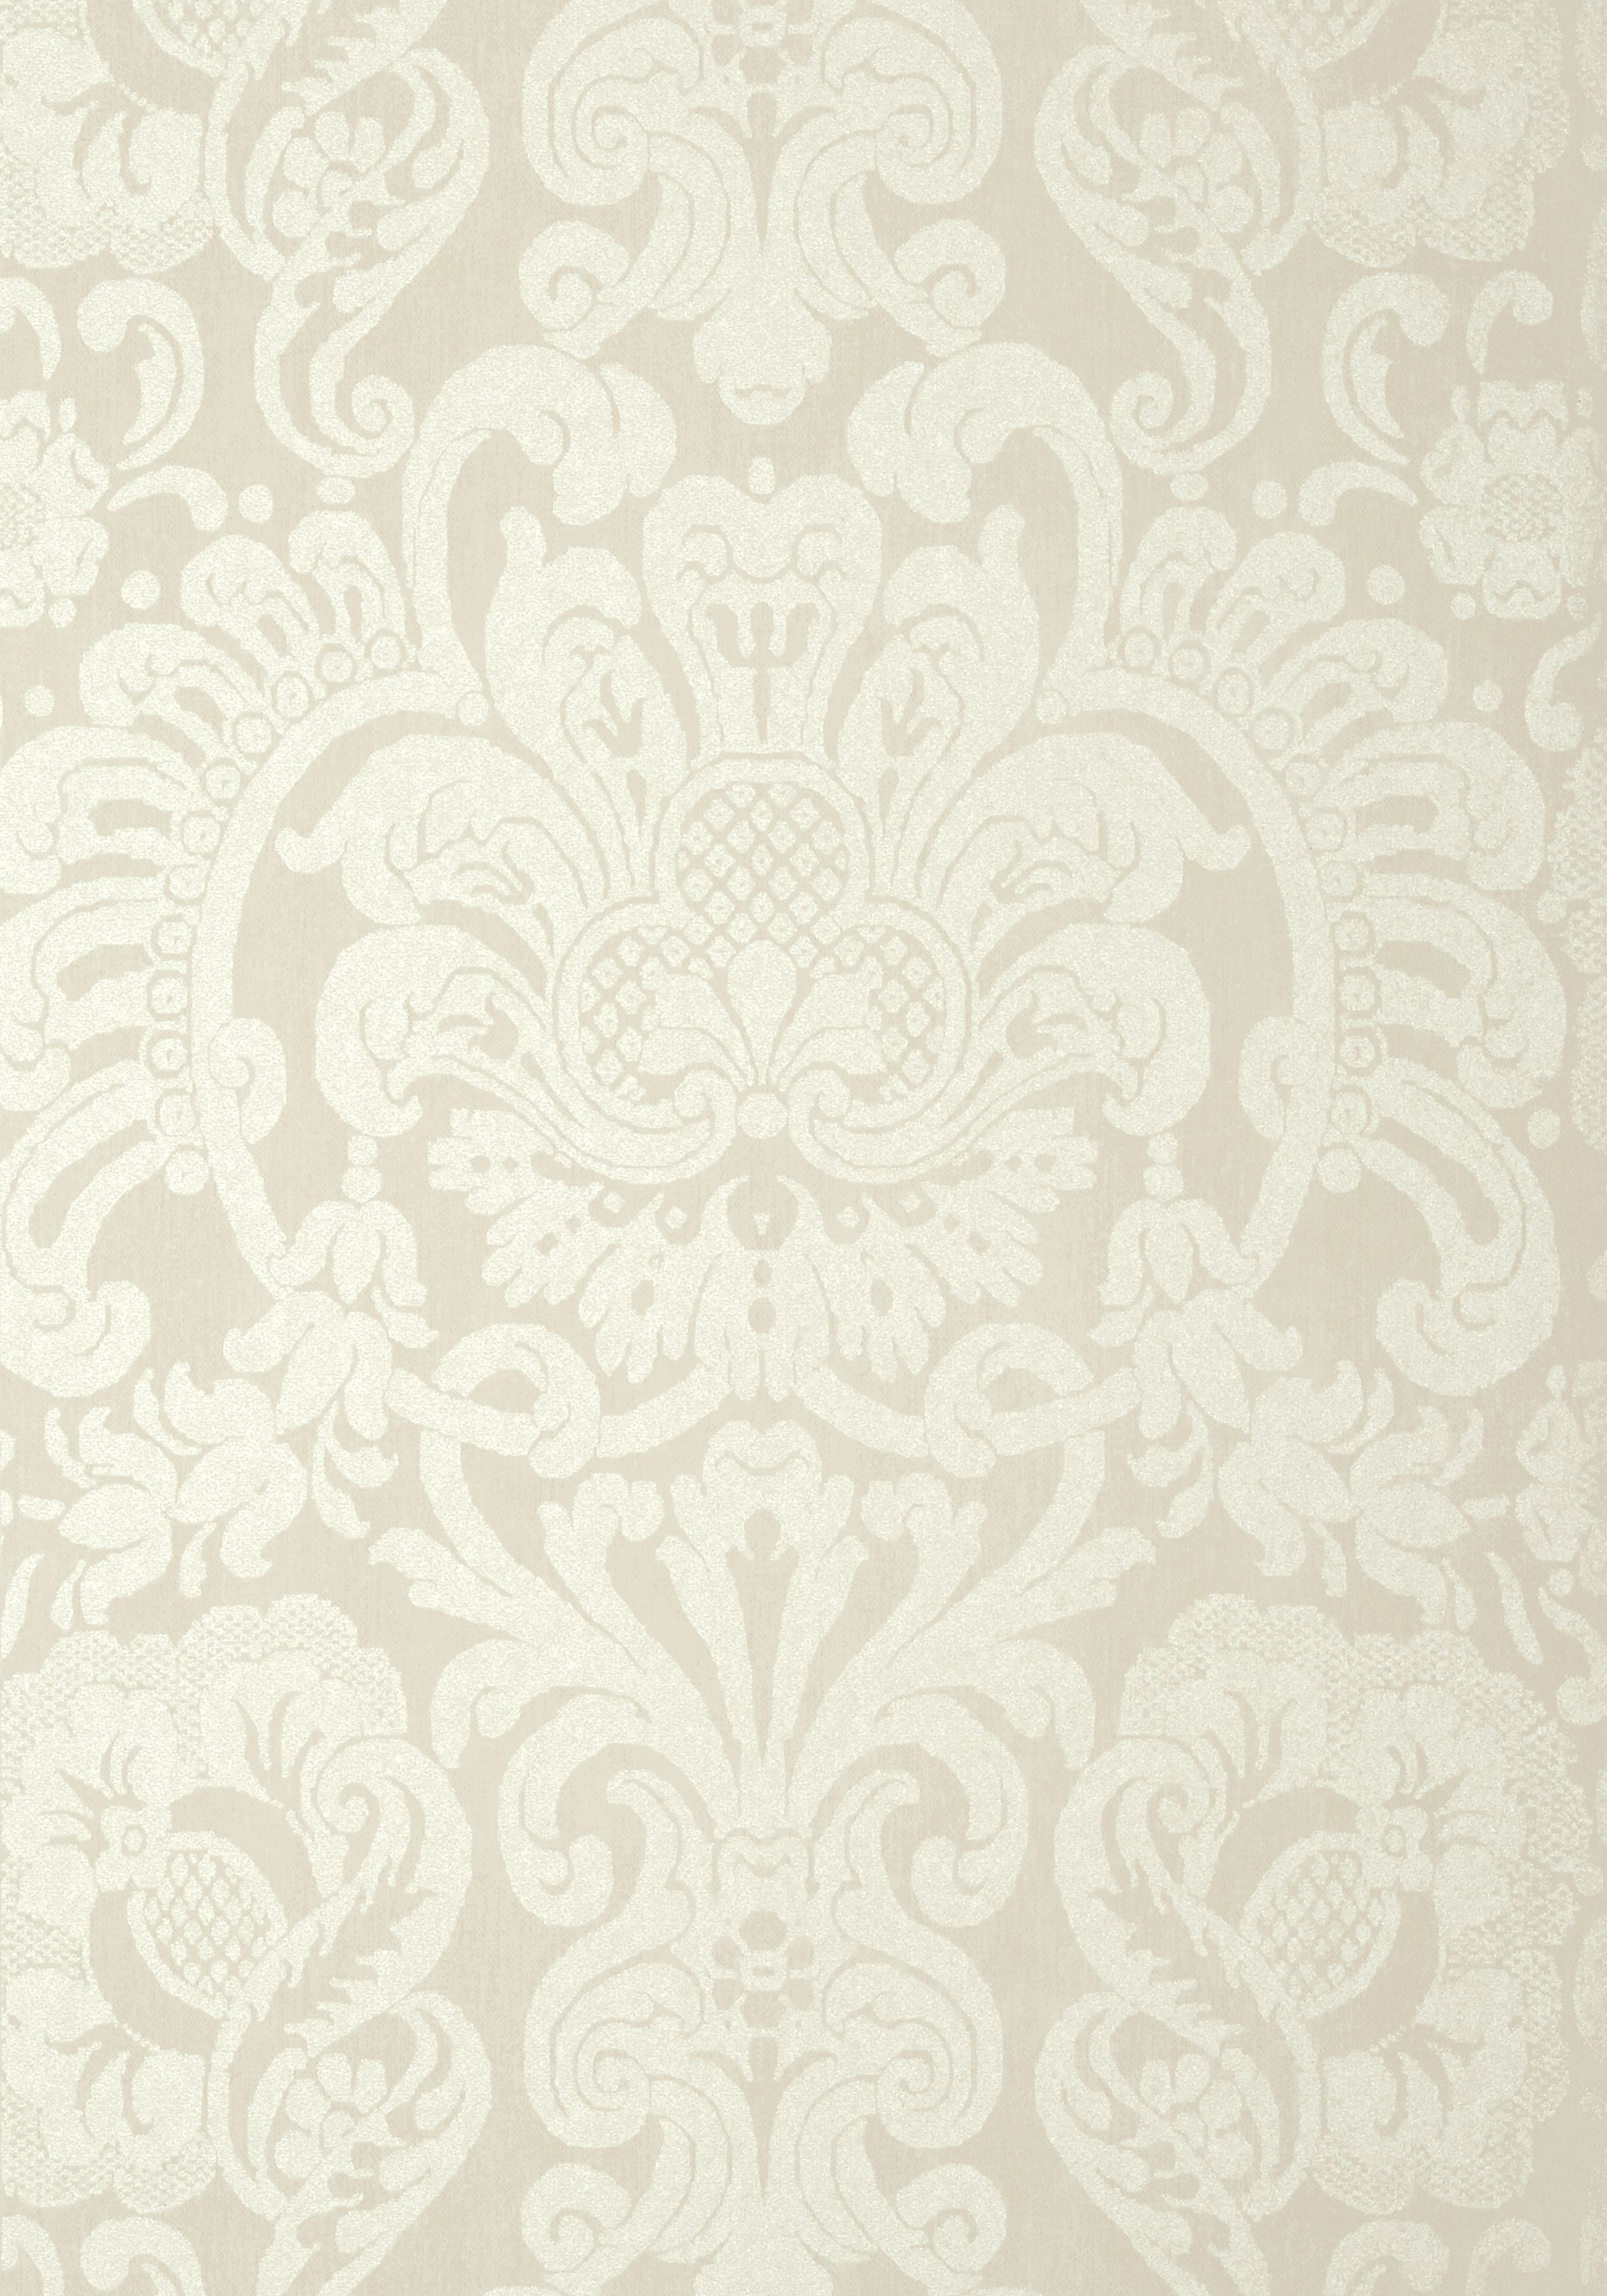 DORIAN DAMASK, Pearl, T89101, Collection Damask Resource 4 from Thibaut shop.wallpaperconnection.com